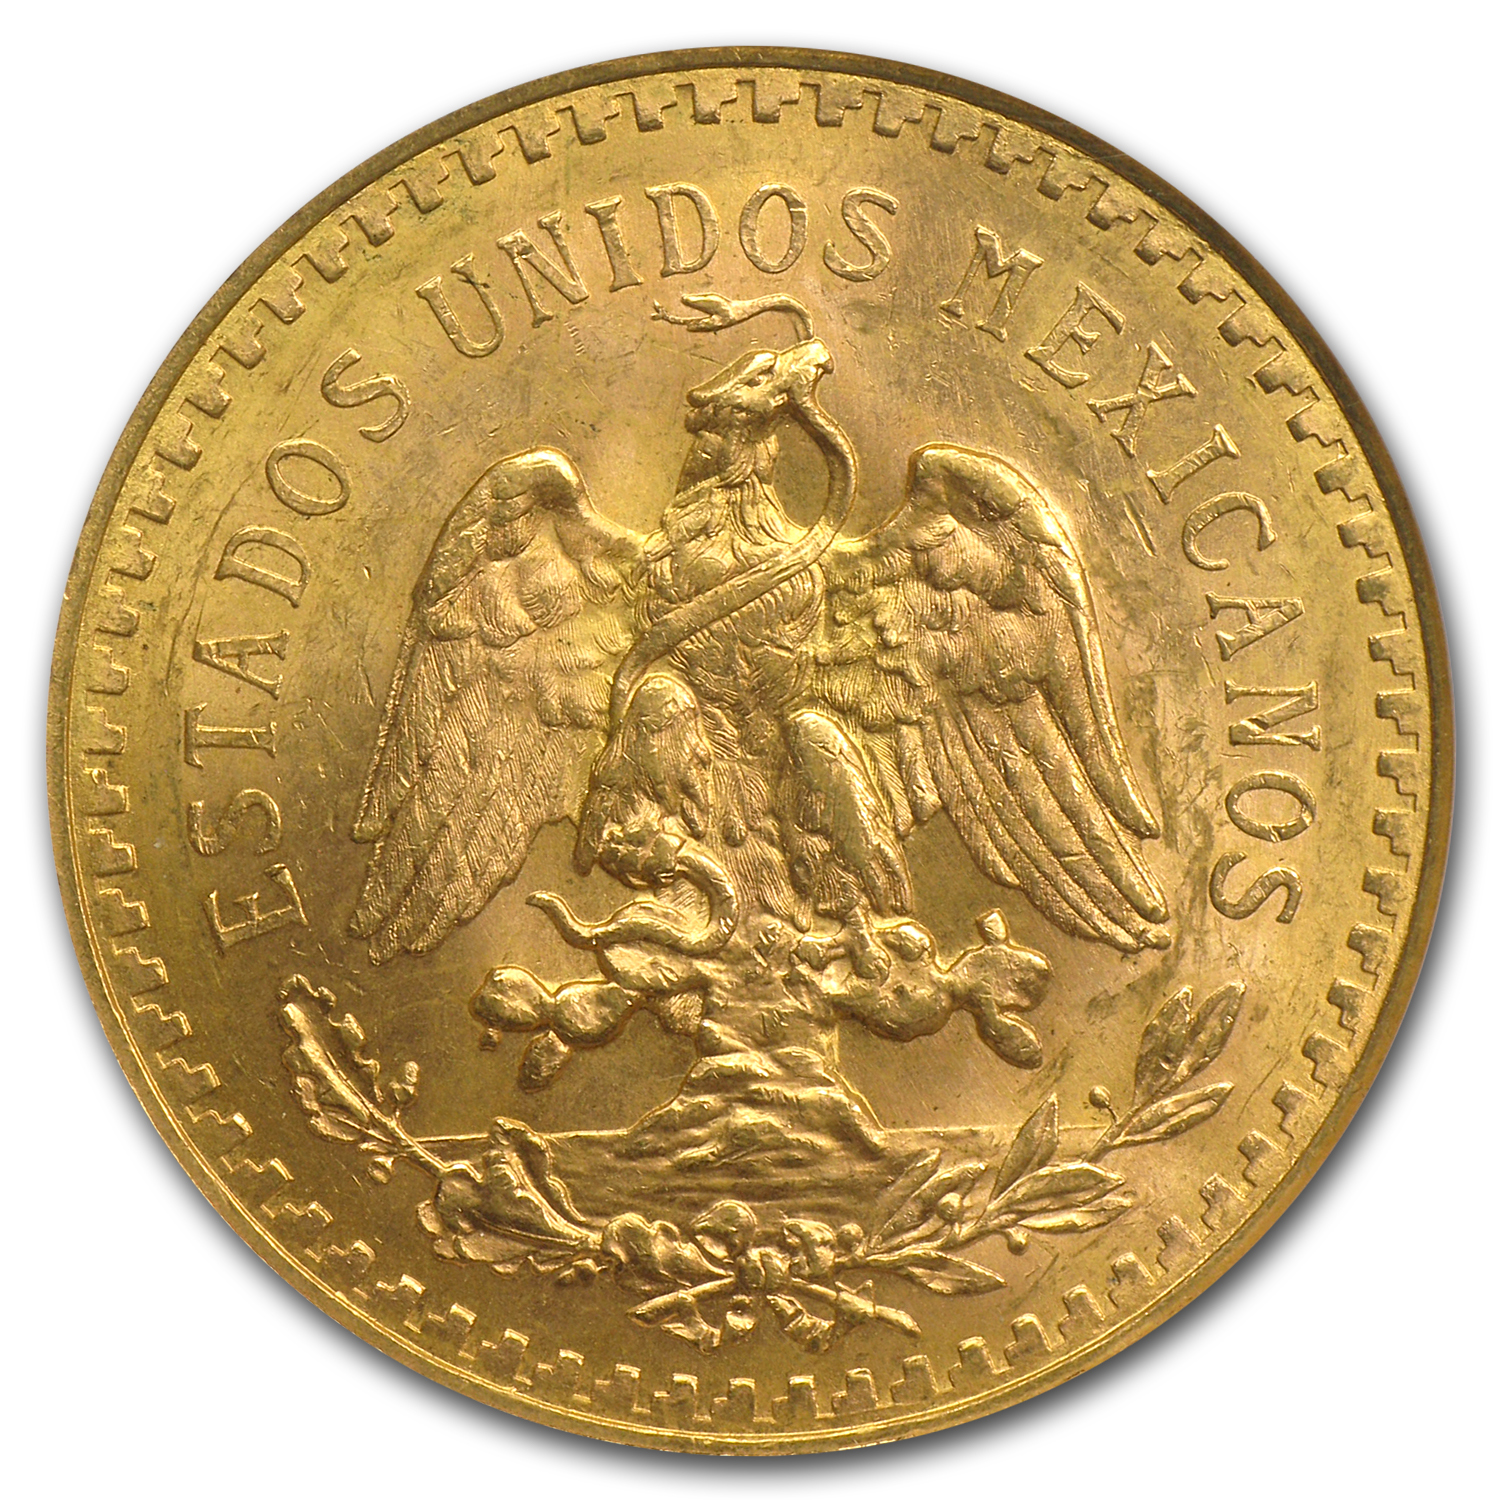 Mexico 1929 50 Pesos Gold Coin - MS-63 NGC